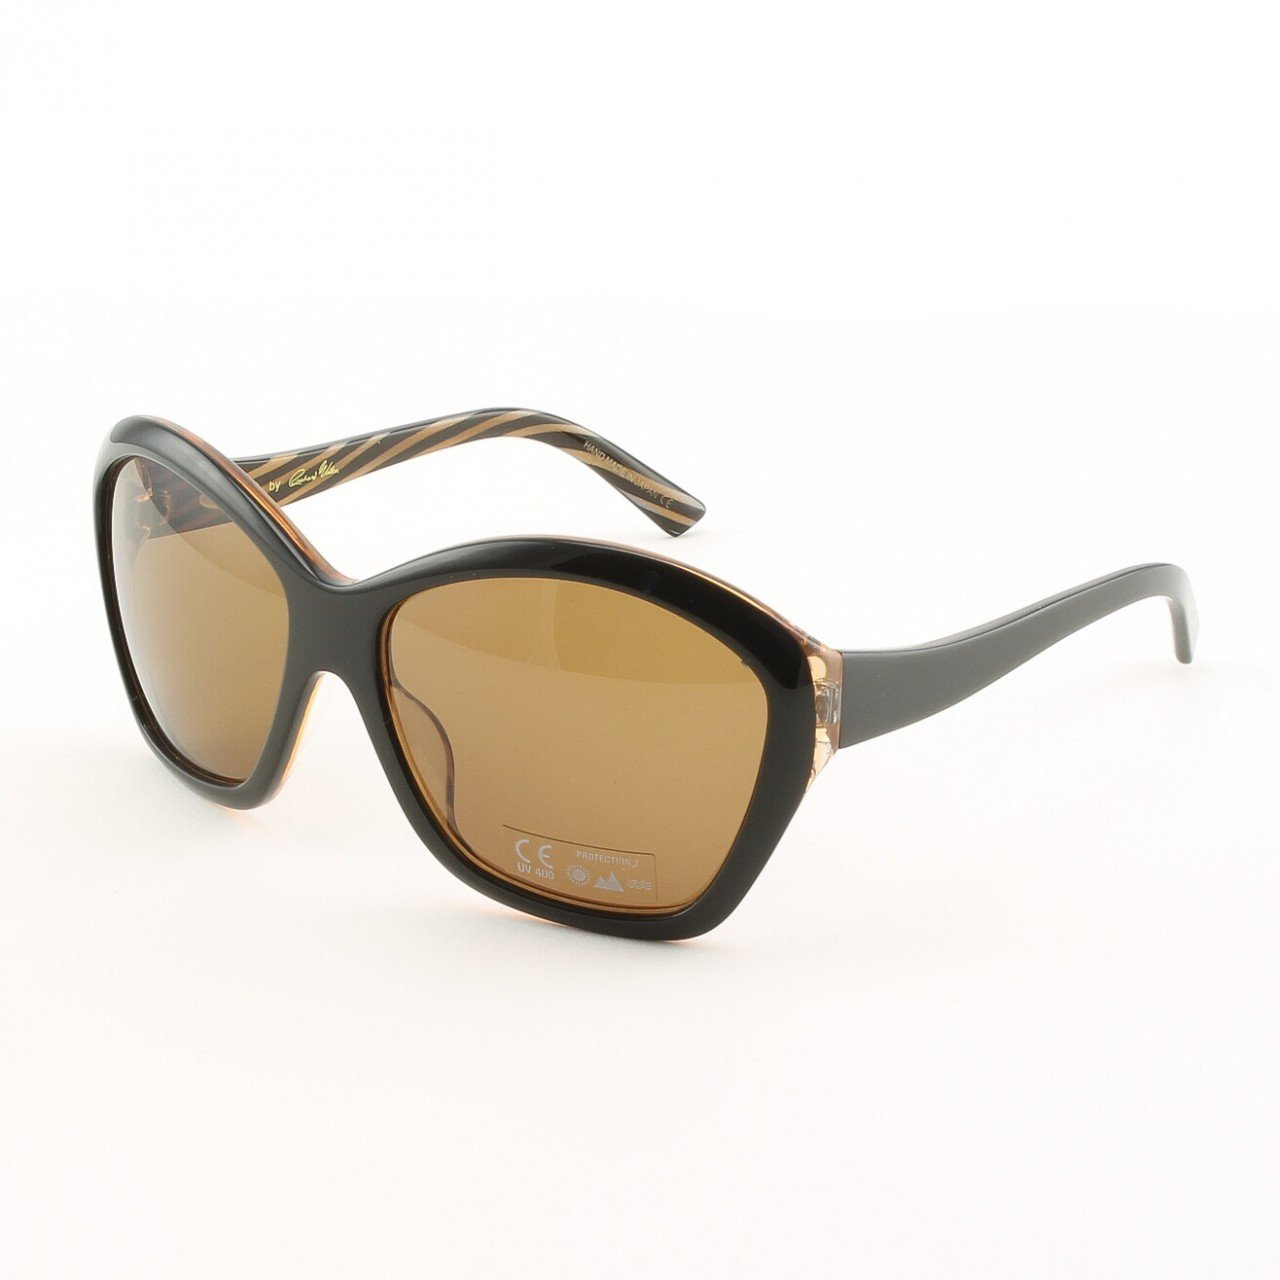 Blinde Born Lucky Women's Sunglasses Col. Brown Zebra with Brown Lenses